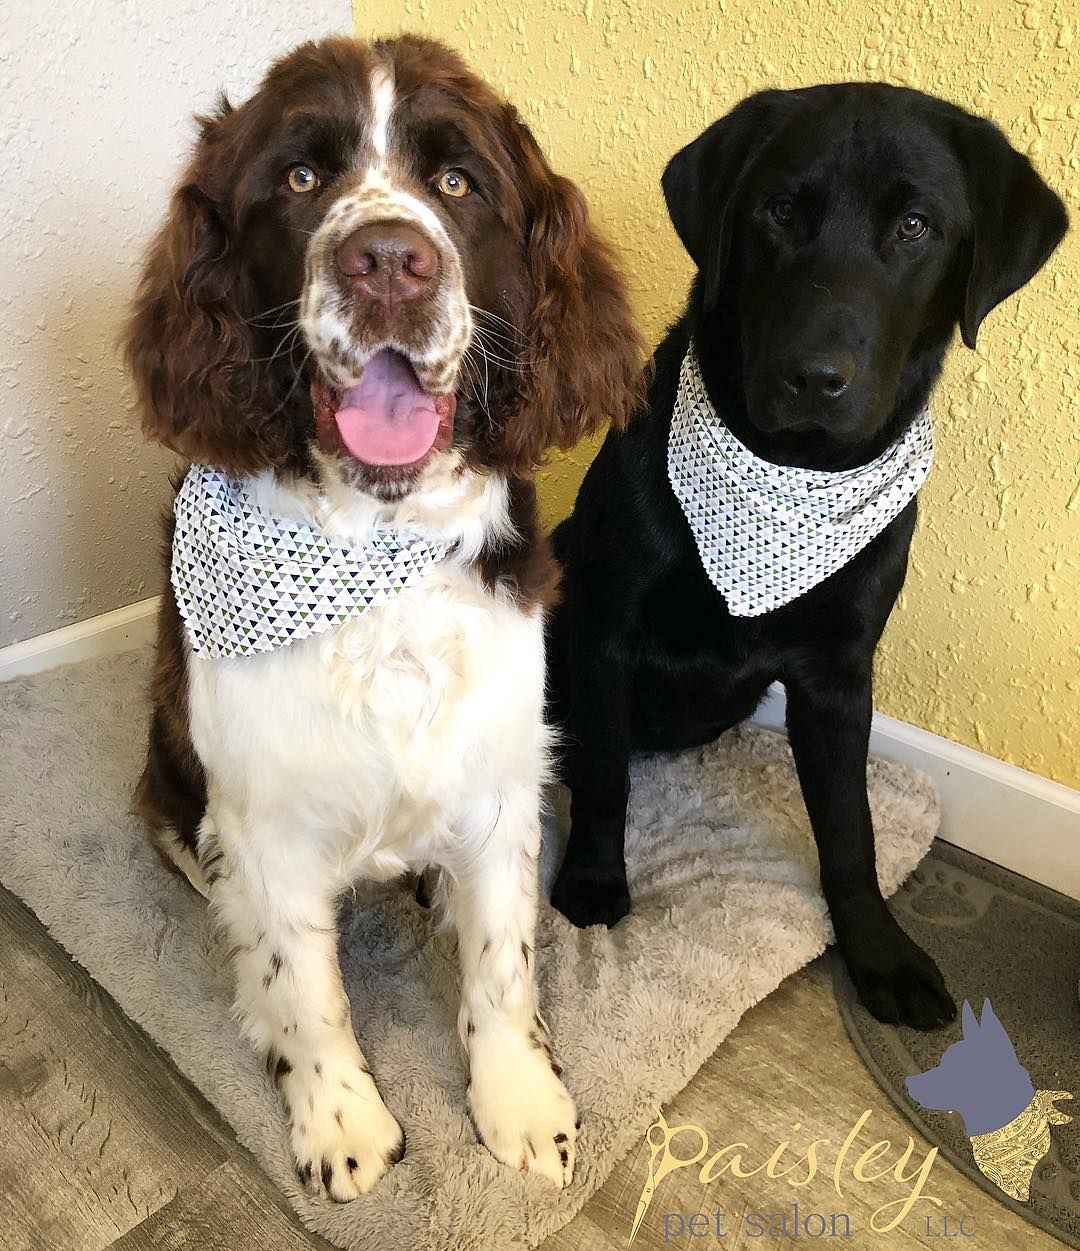 Brothers Moz Juno Are Such An Adorable Pair They Did So Well For Their First Spa Day Moz Juno Springer Sprin Pet Groomers Dog Groomers Dog Grooming